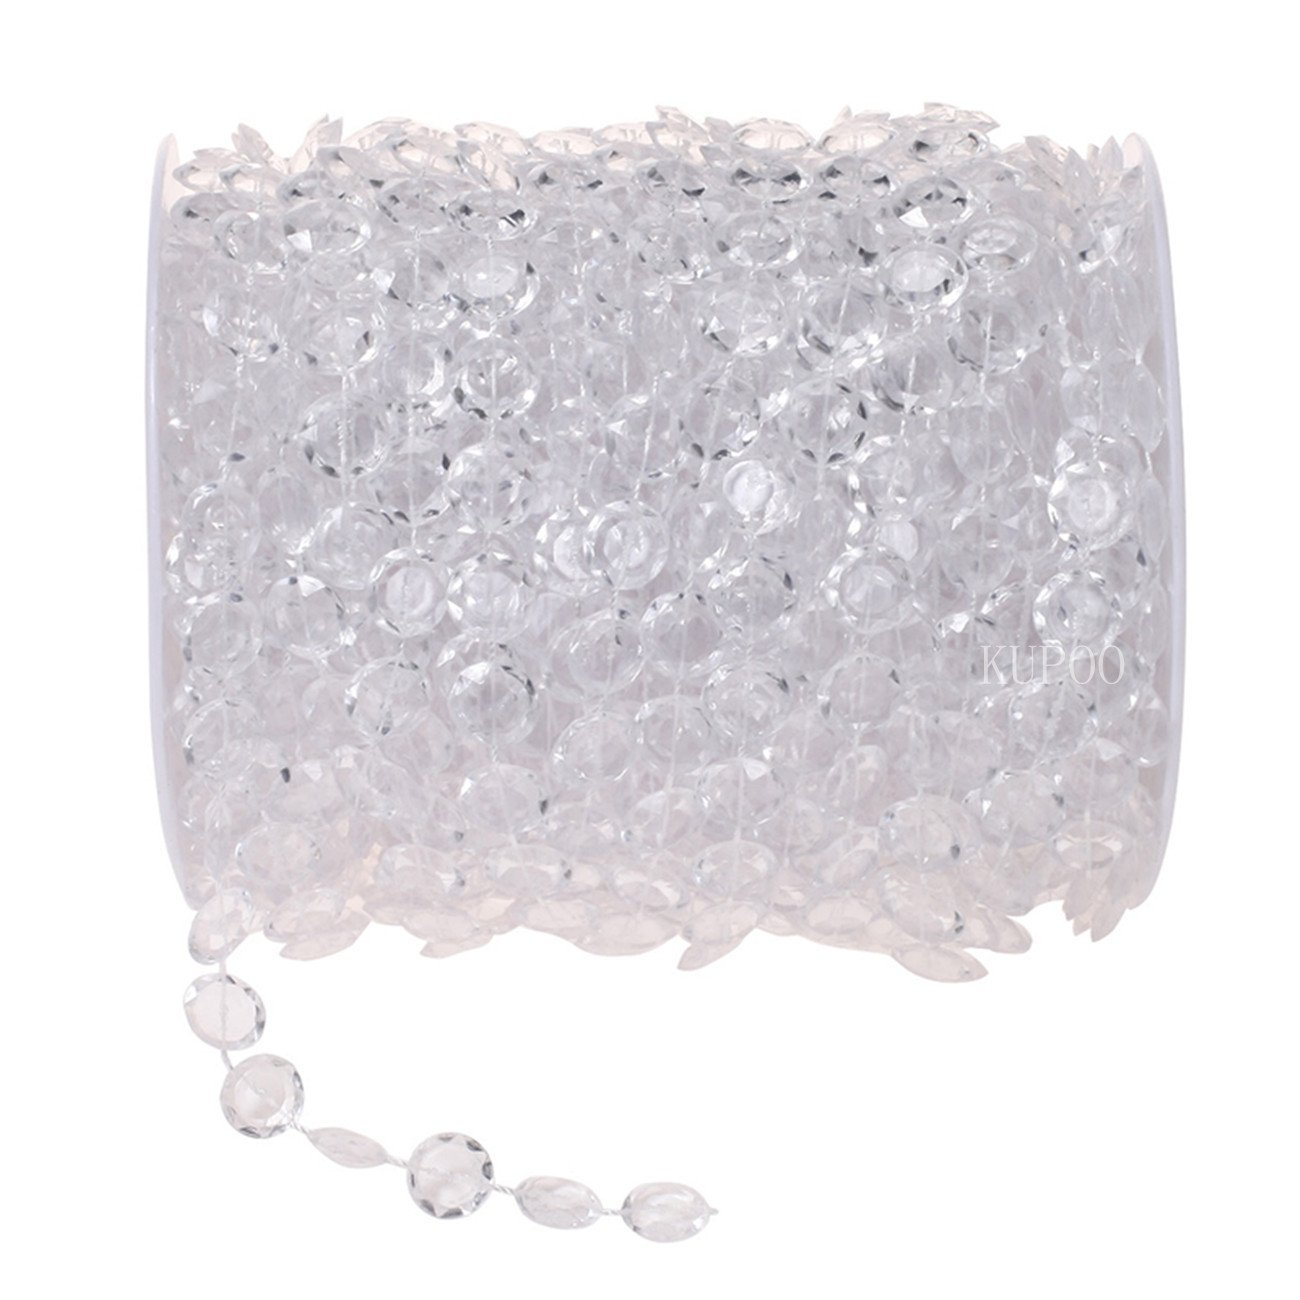 KUPOO 99 ft Clear Crystal Like Beads by the roll - Wedding Decorations (Colorful) CPRL10AB